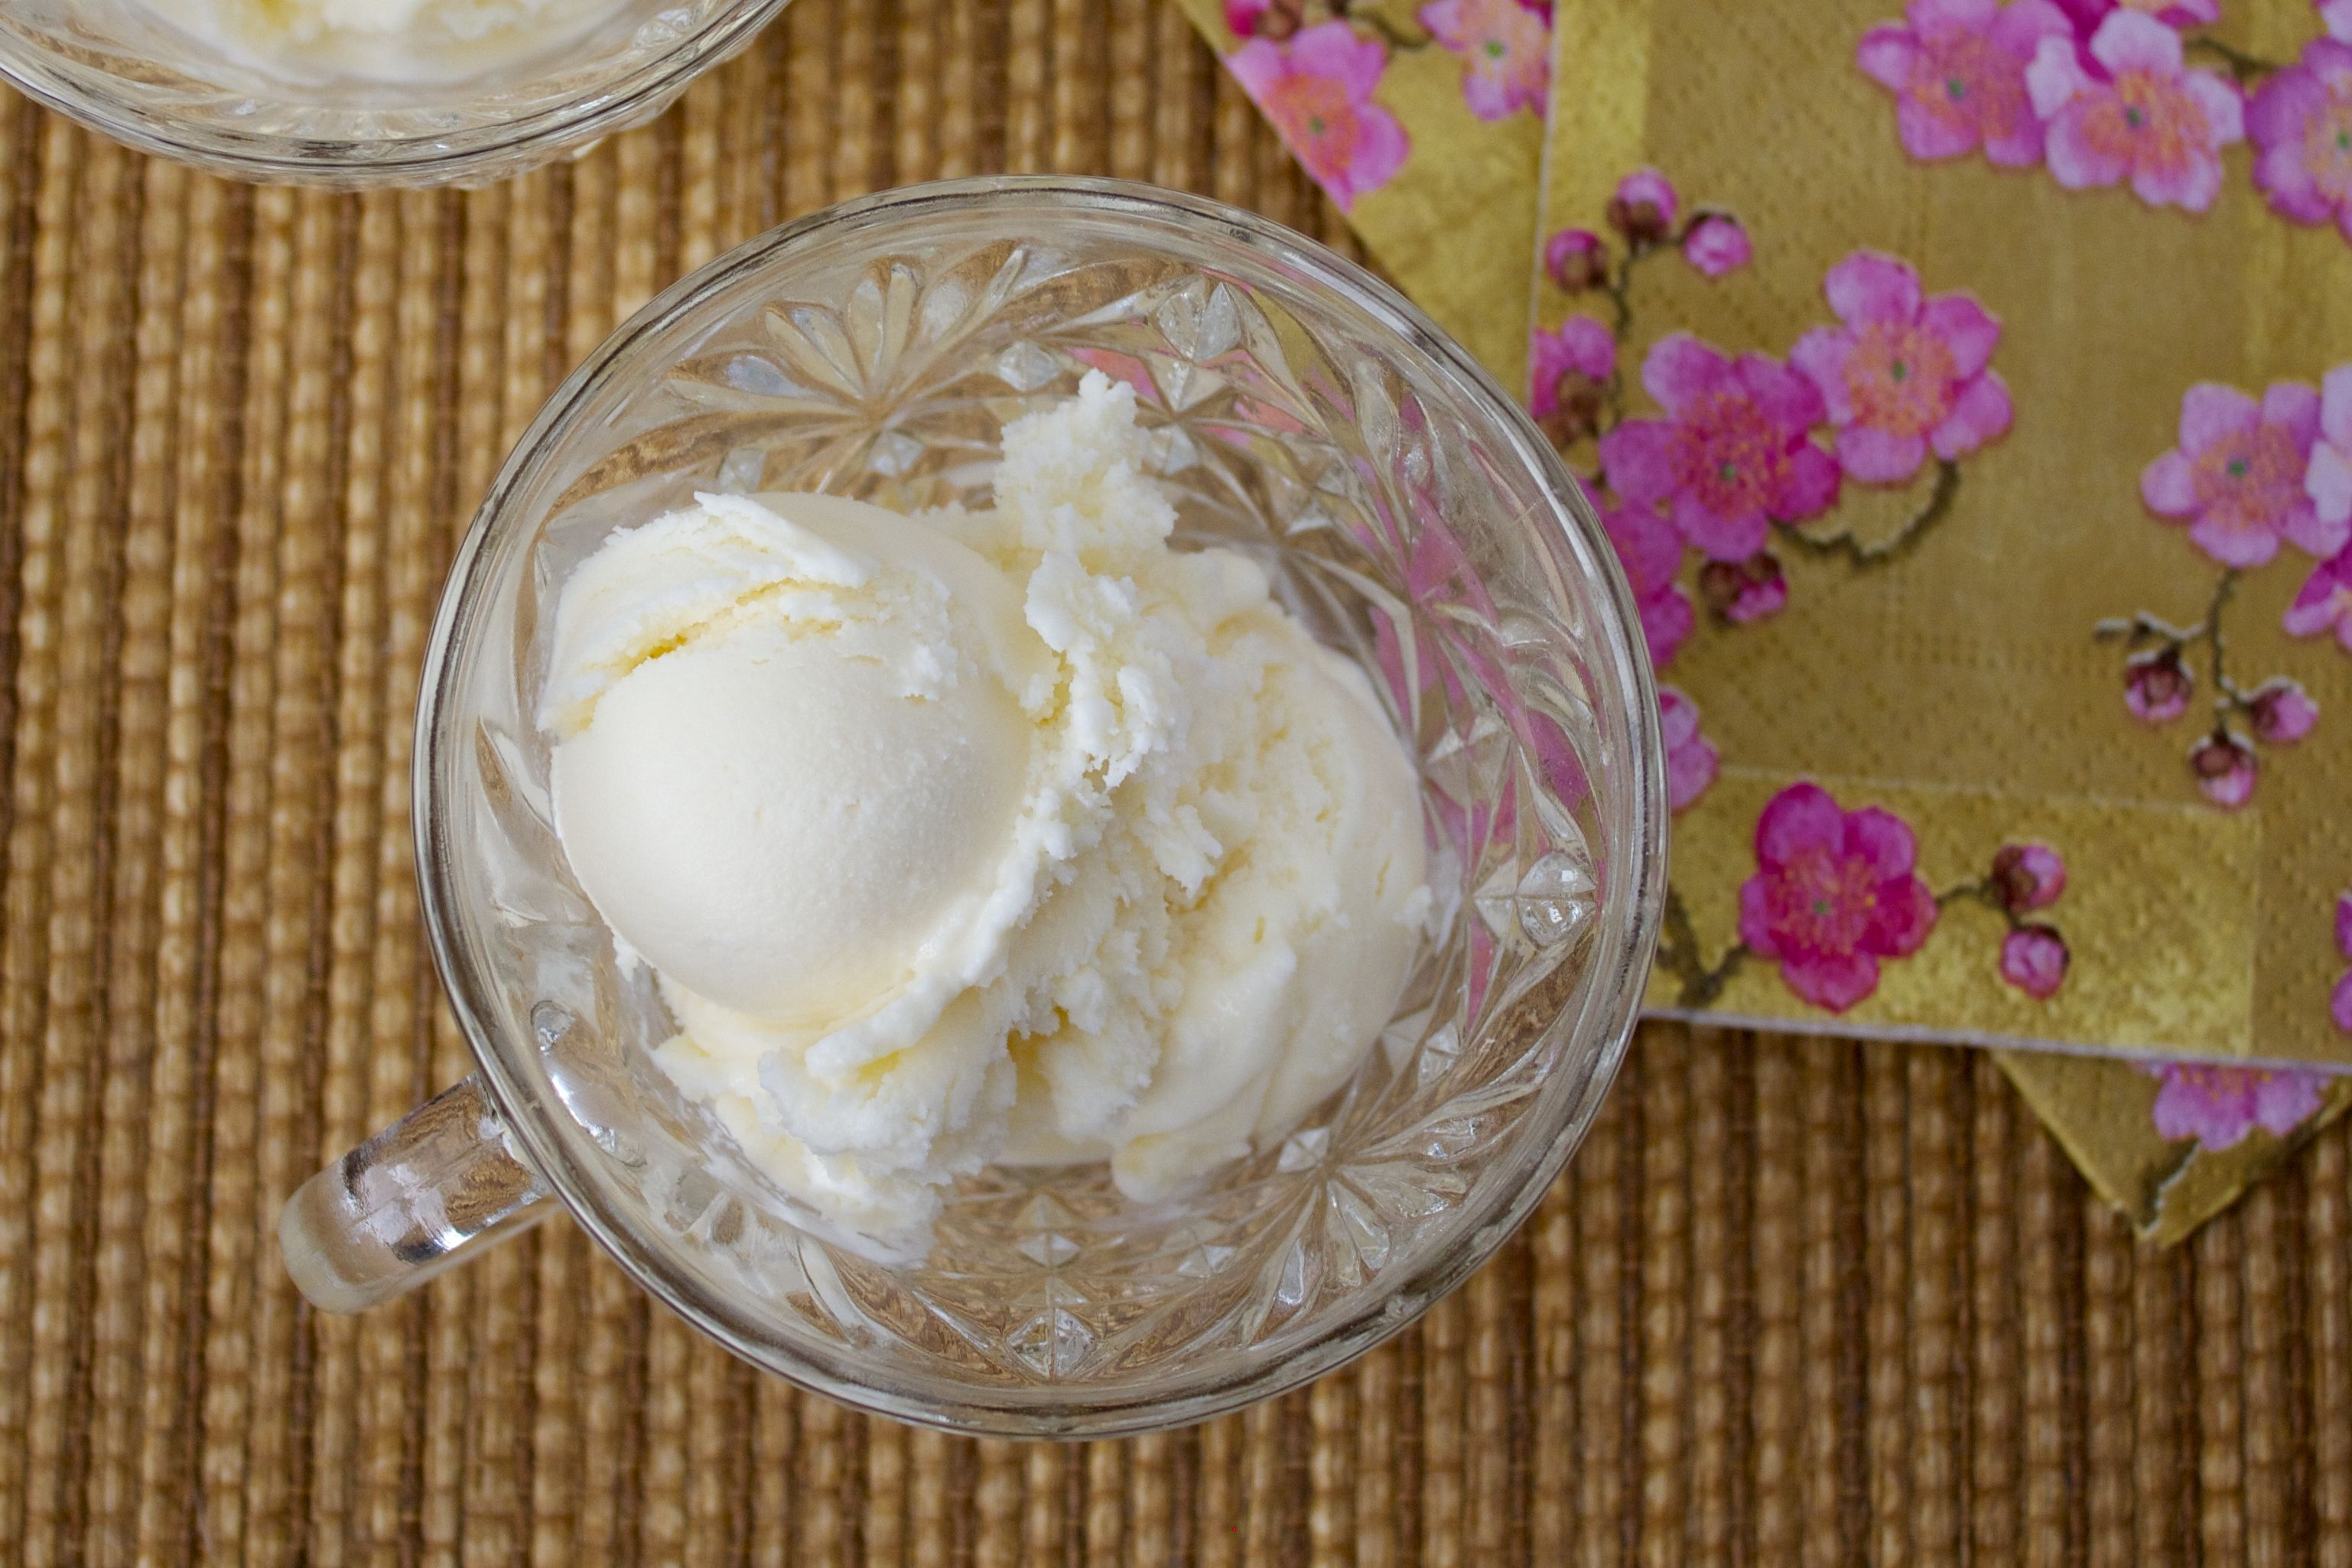 Lazy Day Buttermilk Ice Cream With No Eggs Or Cooking Buttermilk Ice Cream Ice Cream No Egg Ice Cream Recipe